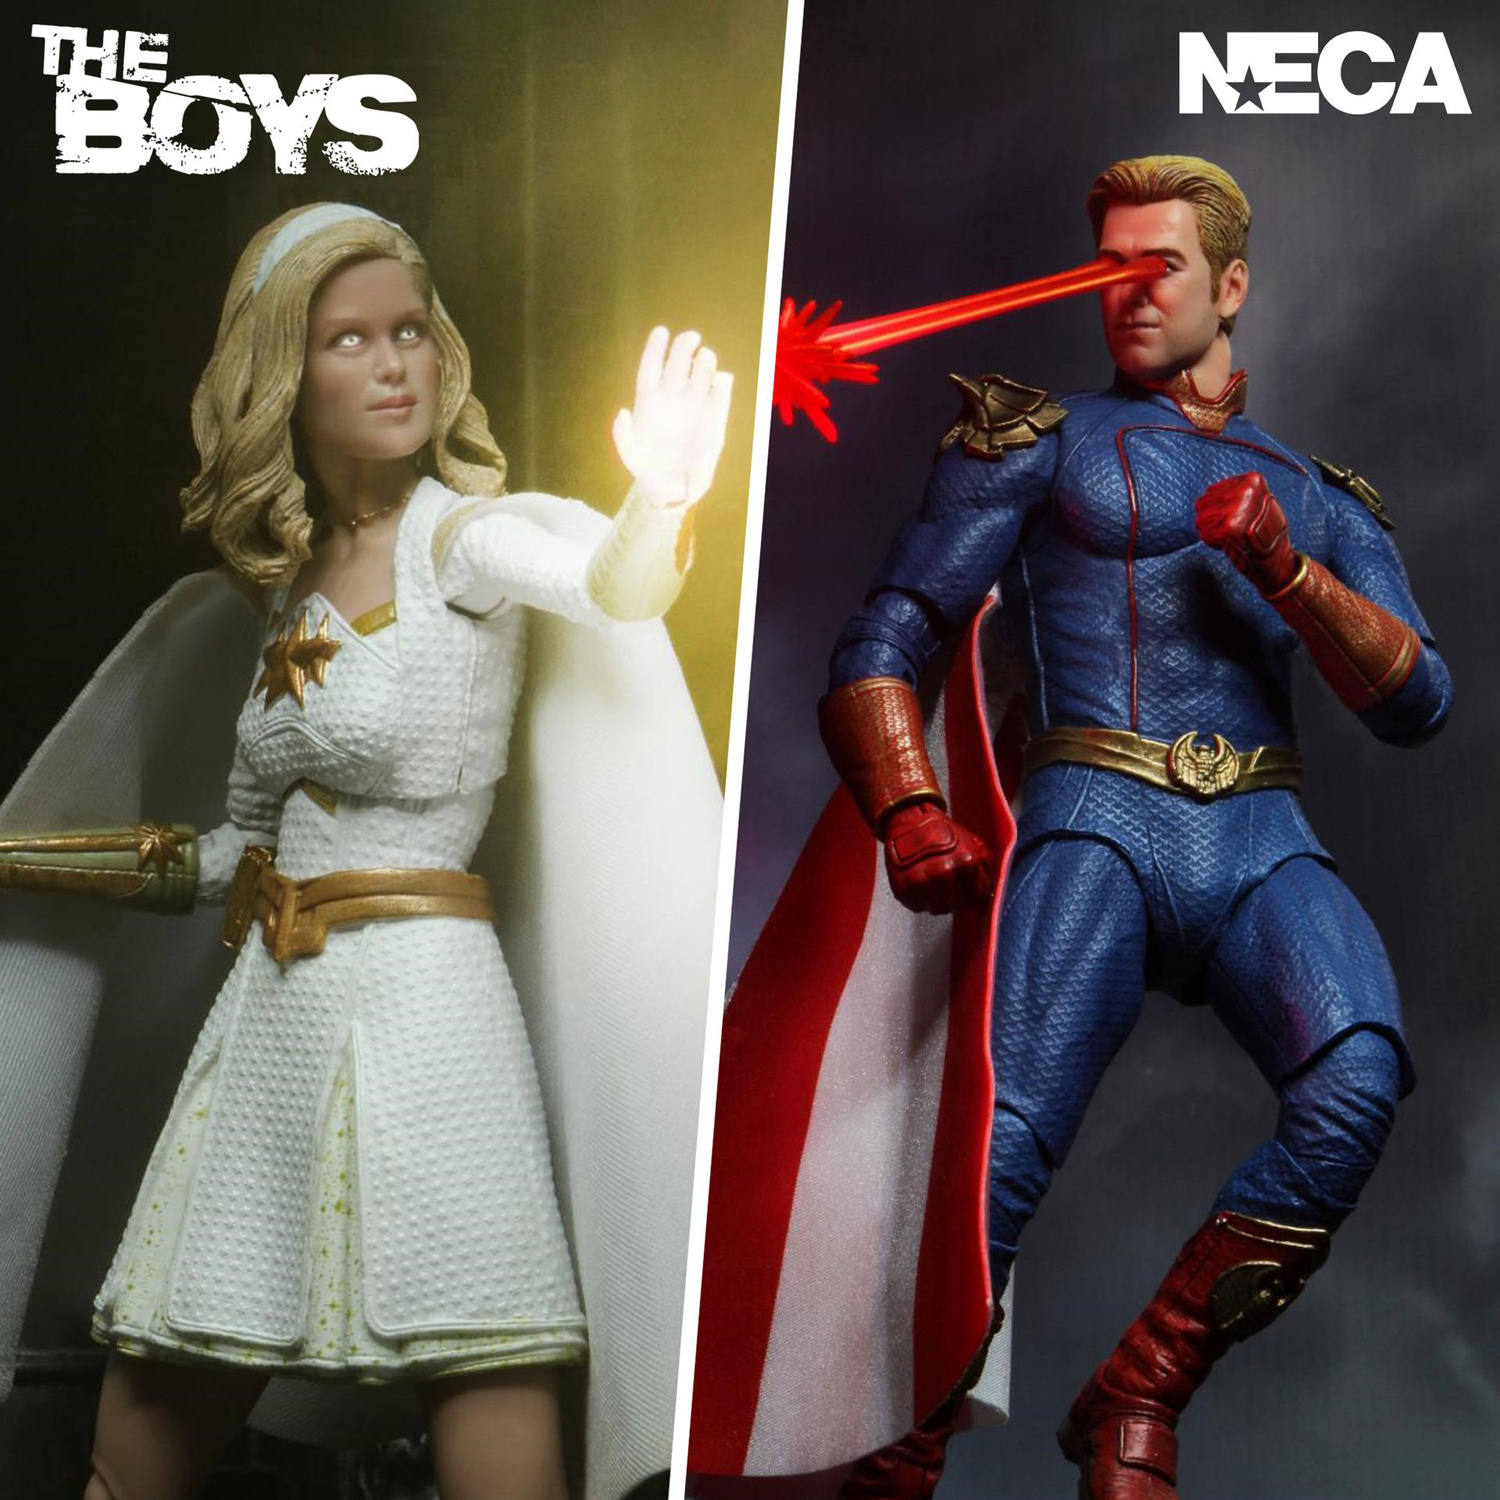 neca-the-boys-ultimate-action-figures-preorder